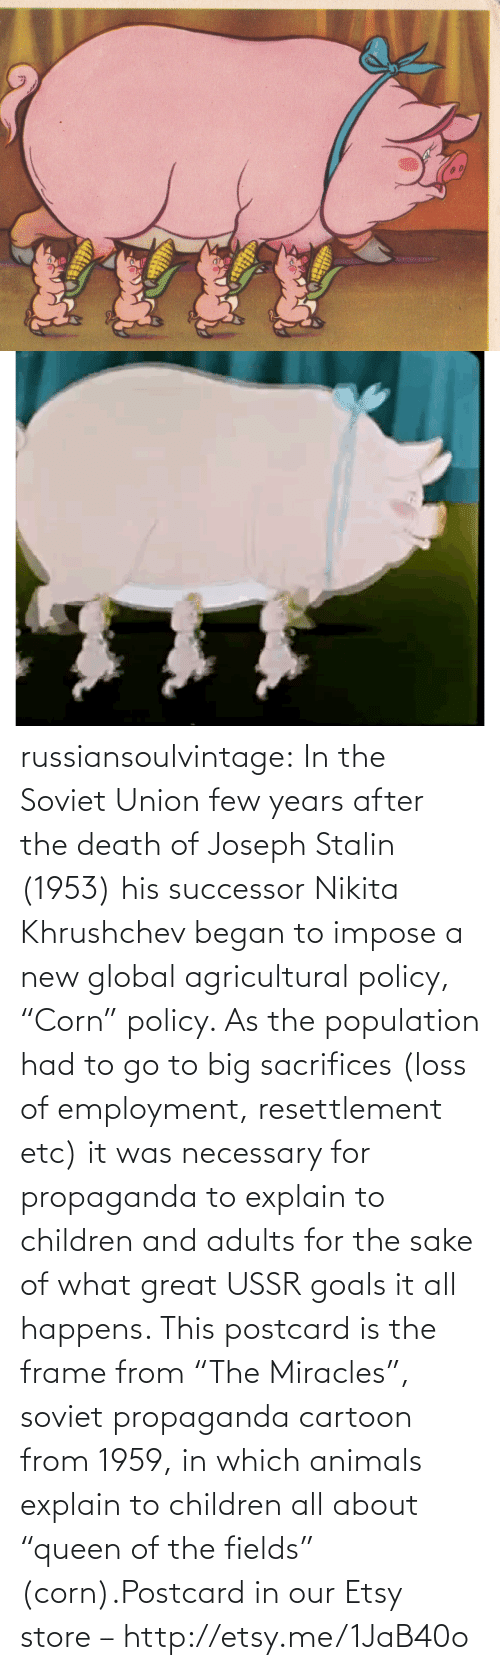 """Successor: russiansoulvintage:  In the Soviet Union few years after the death of Joseph Stalin (1953) his successor Nikita Khrushchev began to impose a new global agricultural policy, """"Corn"""" policy. As the population had to go to big sacrifices (loss of employment, resettlement etc) it was necessary for propaganda to explain to children and adults for the sake of what great USSR goals it all happens. This postcard is the frame from """"The Miracles"""", soviet propaganda cartoon from 1959, in which animals explain to children all about """"queen of the fields"""" (corn).Postcard in our Etsy store –http://etsy.me/1JaB40o"""